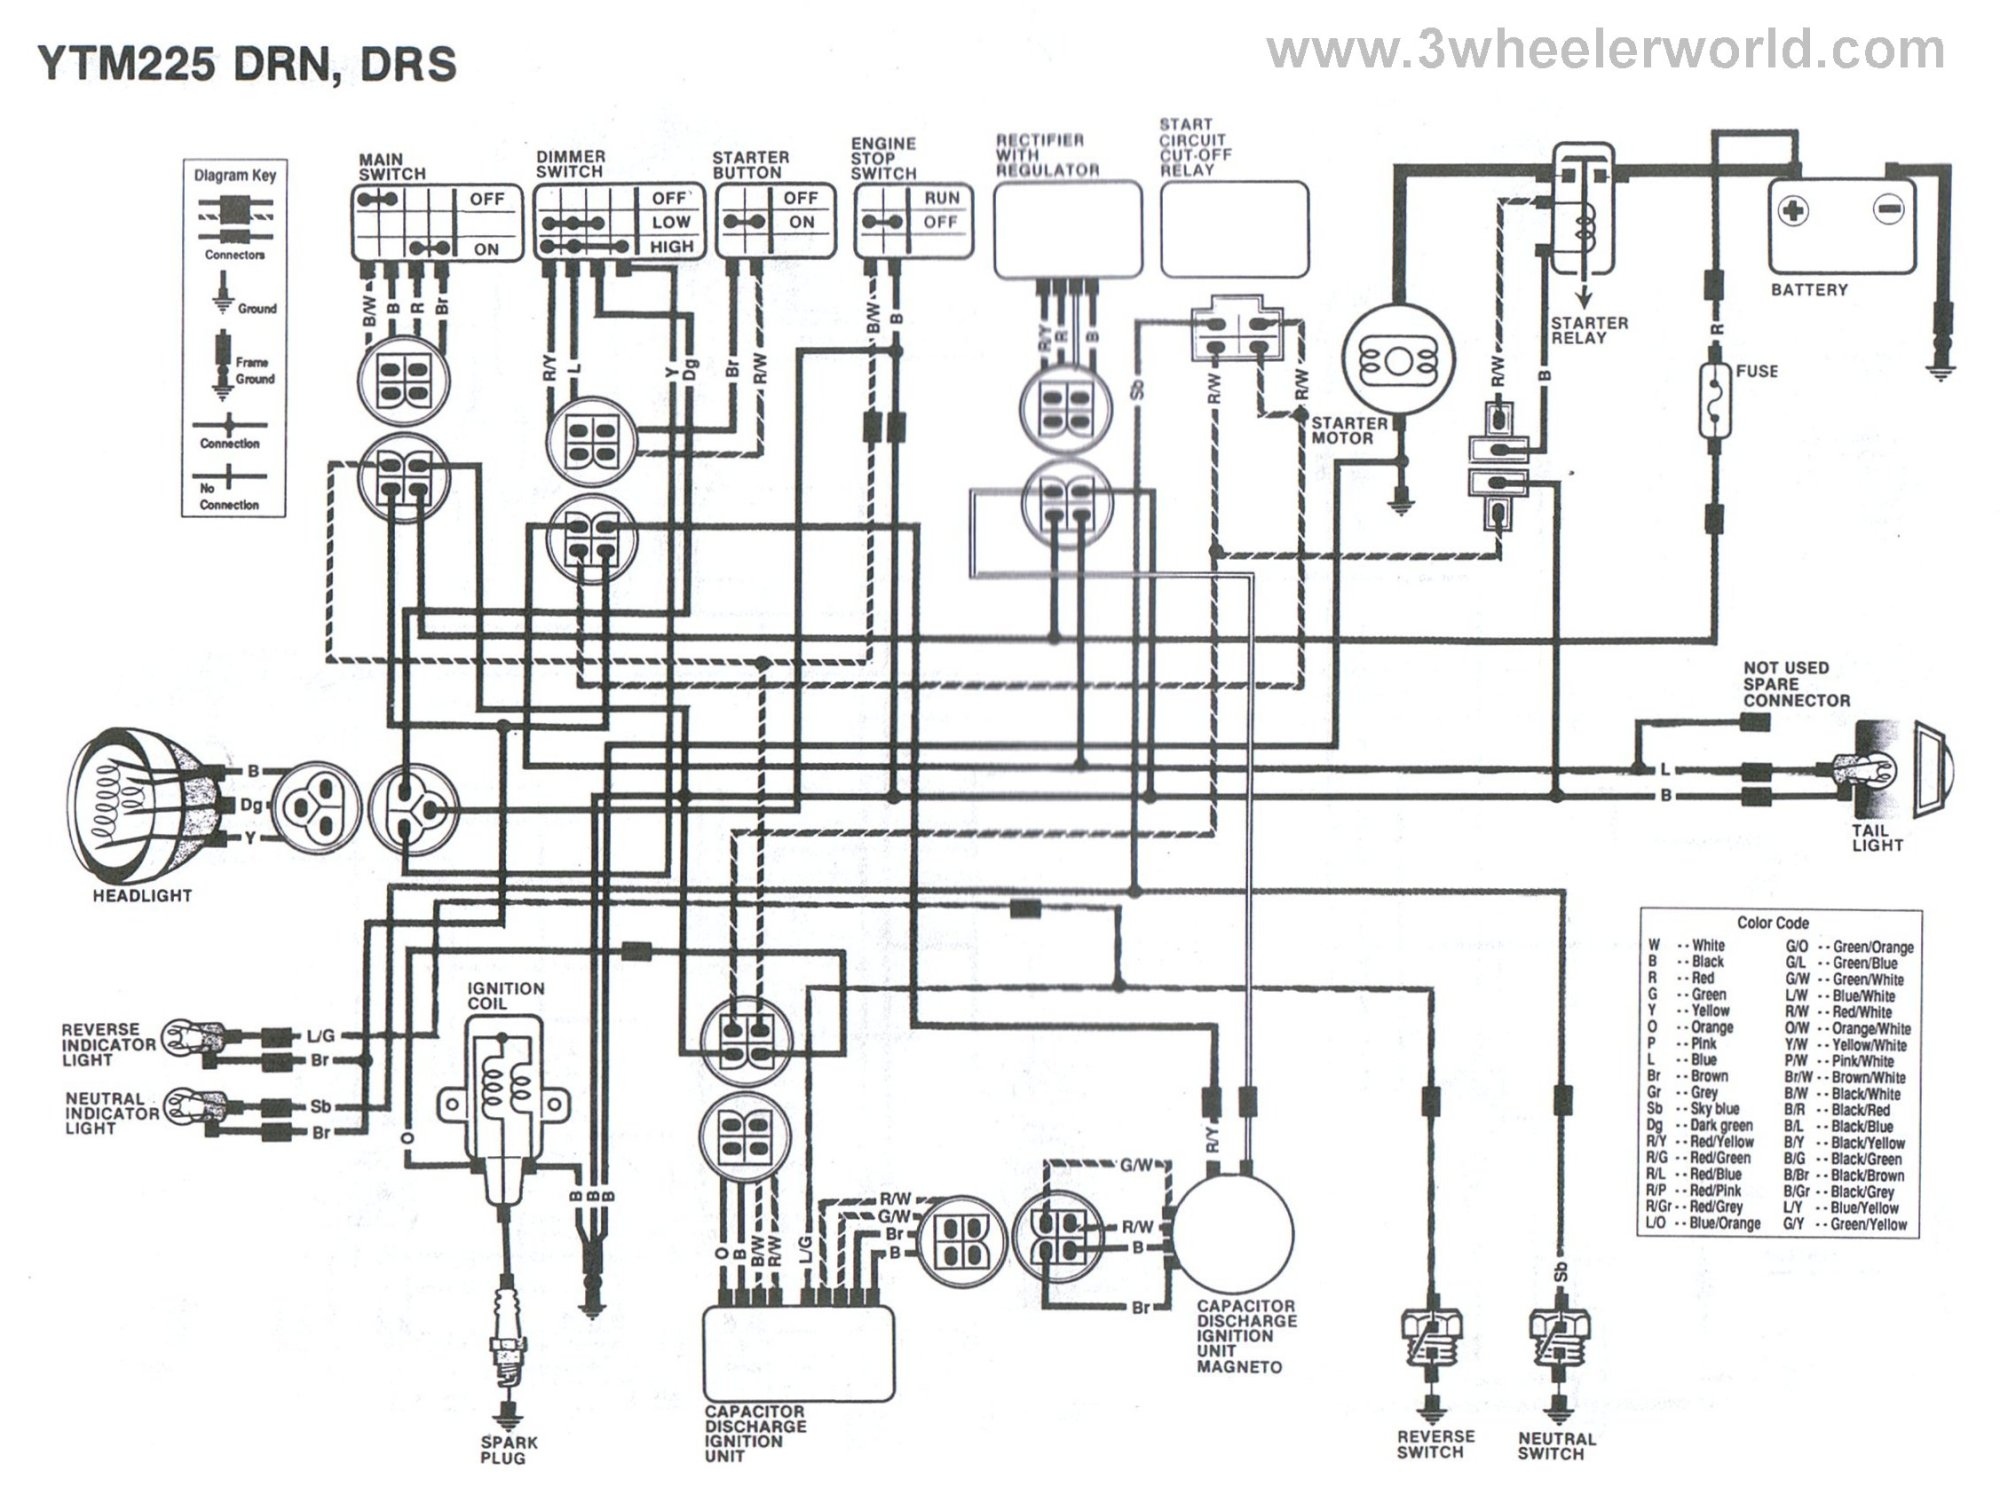 hight resolution of yamaha wiring diagrams page 4 wiring diagram details yamaha wiring diagram umax 2004 g27e yamaha wiring diagram